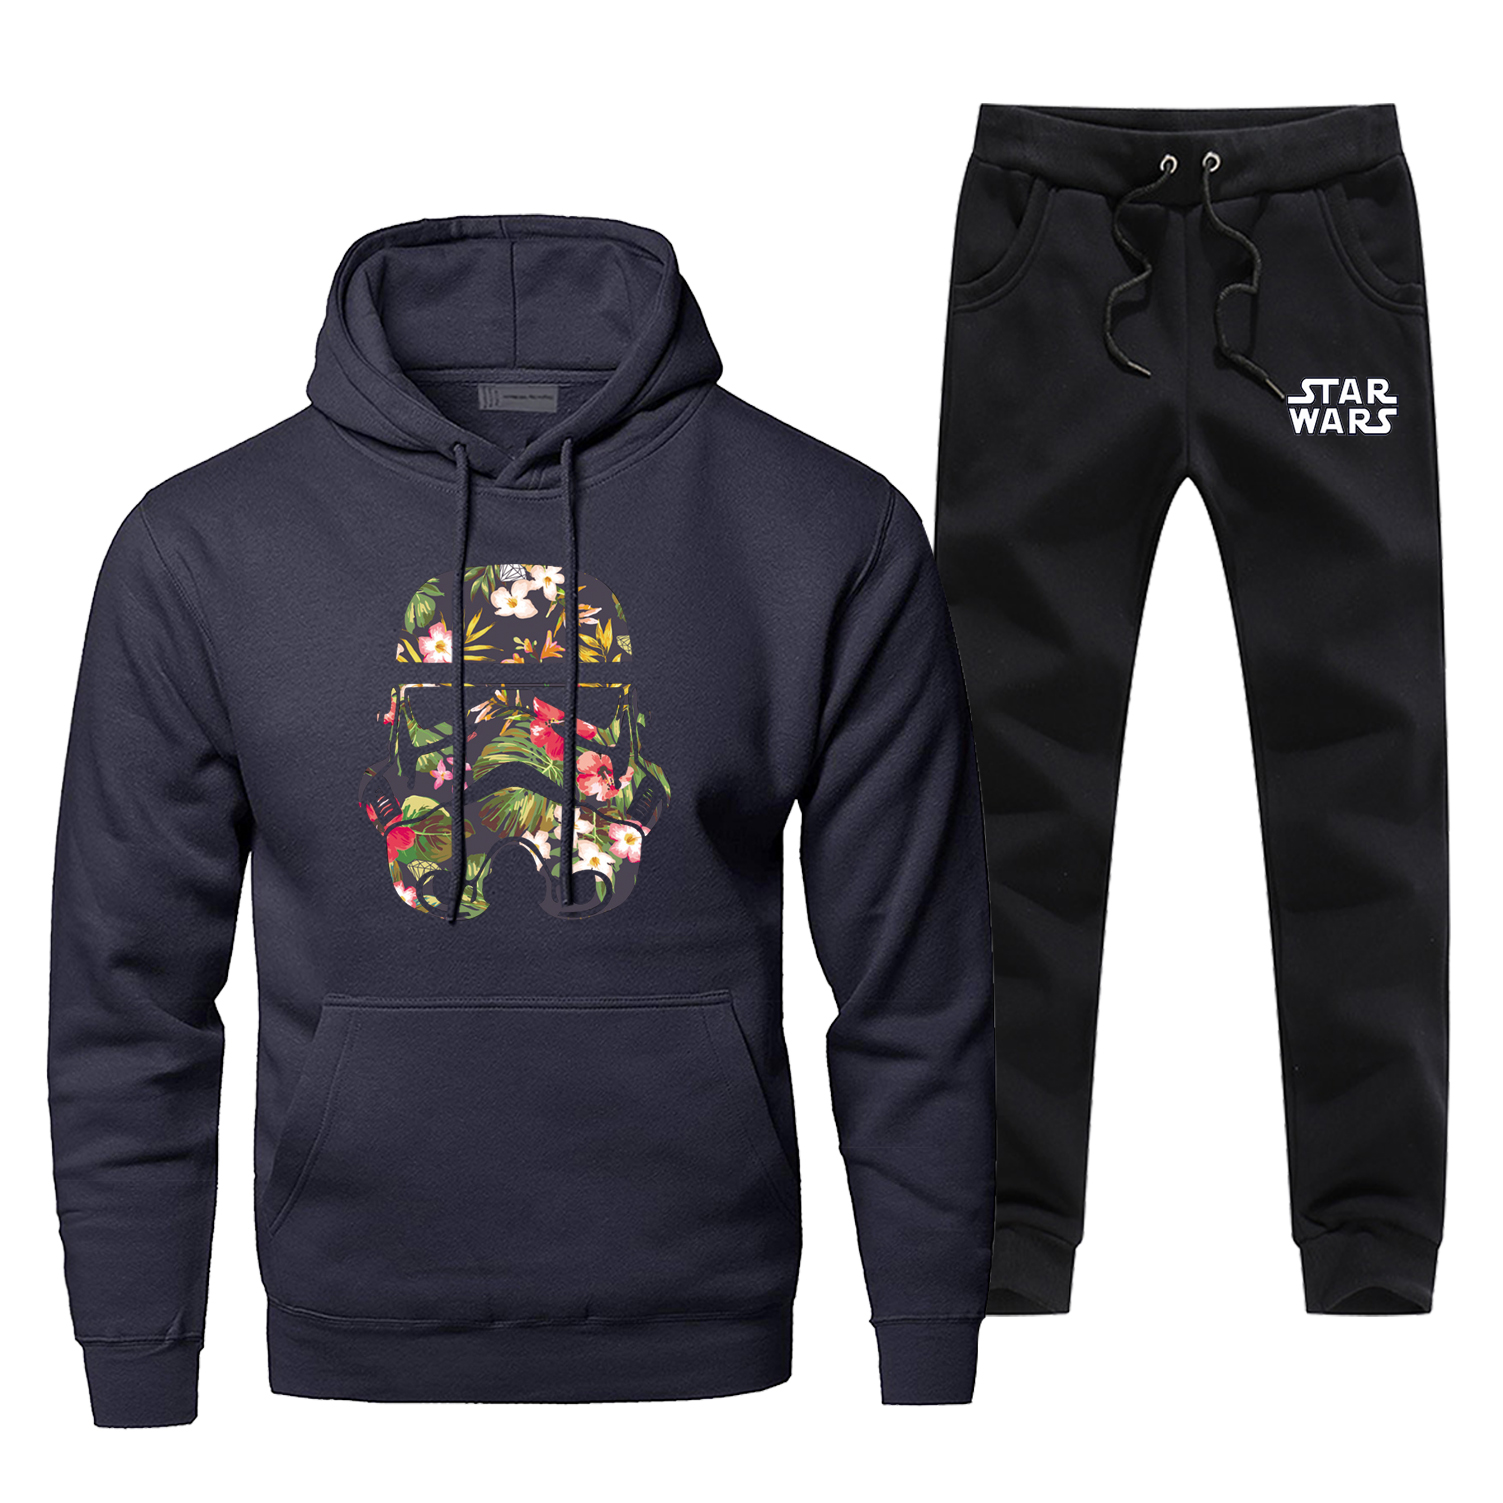 Star Wars Hoodies Men Darth Vader Funny Sportswear Hoodie+pants 2Pcs Sets Casual Fleece Men's Sweatshirt Tracksuit Sweatpants